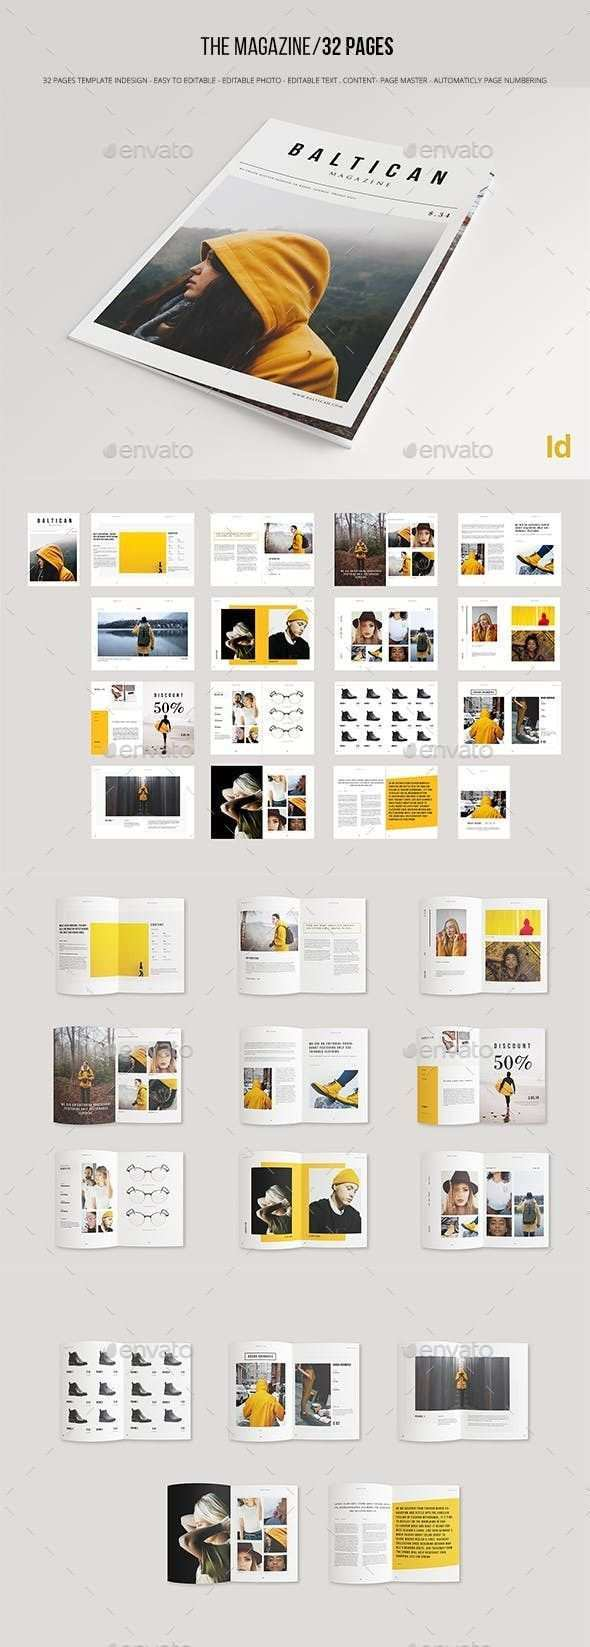 Brochure Template Indesign Indd Brochure Indd Indesign Template Layout Design Broschure Design Zeitschriften Layouts